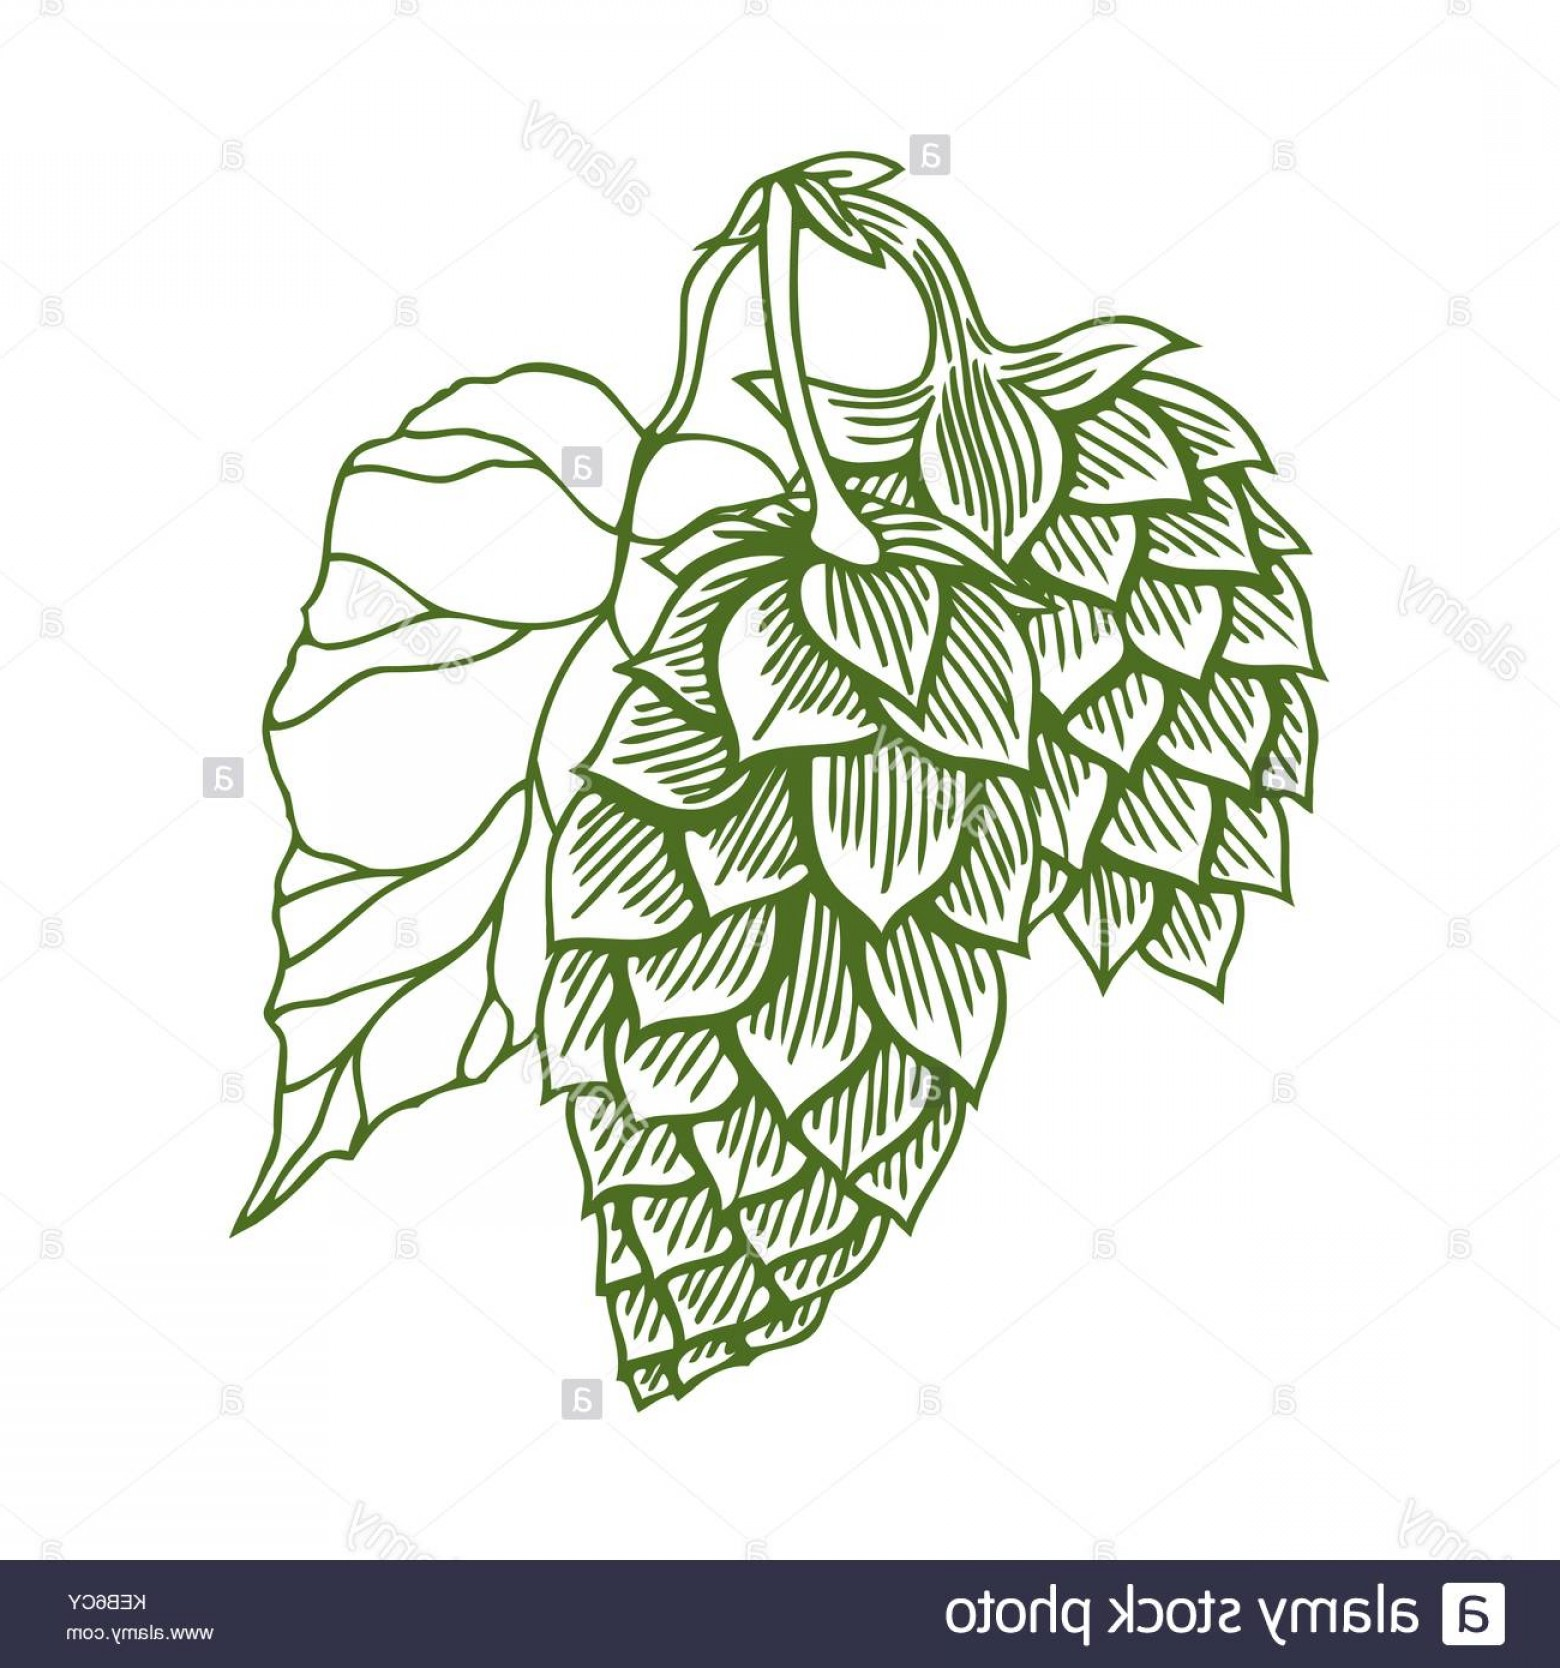 Beer Hops Vector: Stock Photo Hops Vector Visual Graphic Icon Or Logo Ideal For Beer Stout Ale Lager